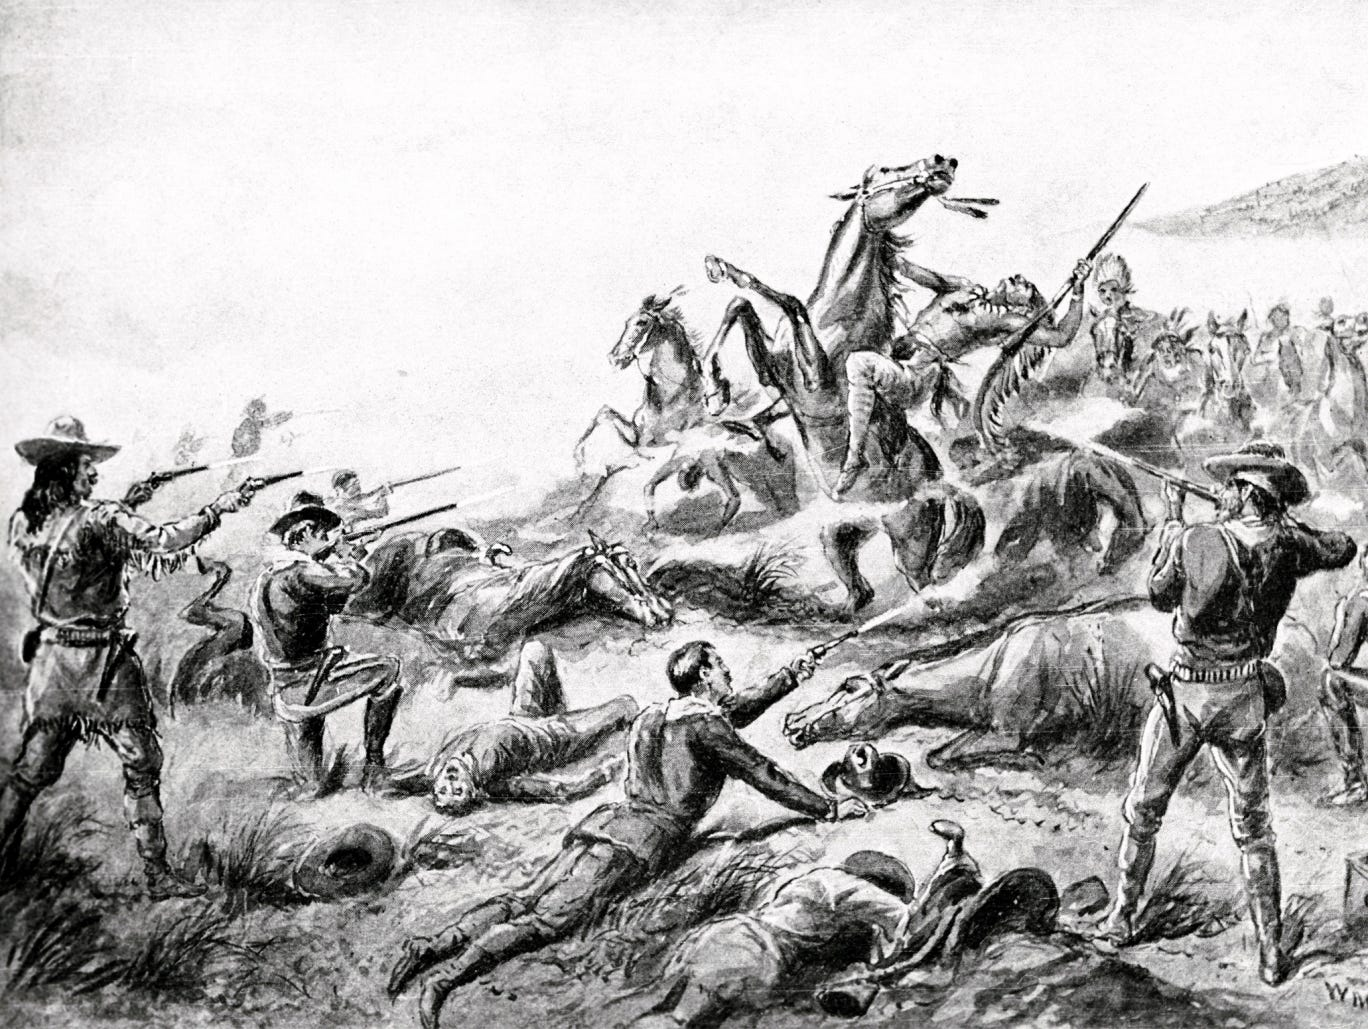 A painting of the 1890 massacre at Wounded Knee